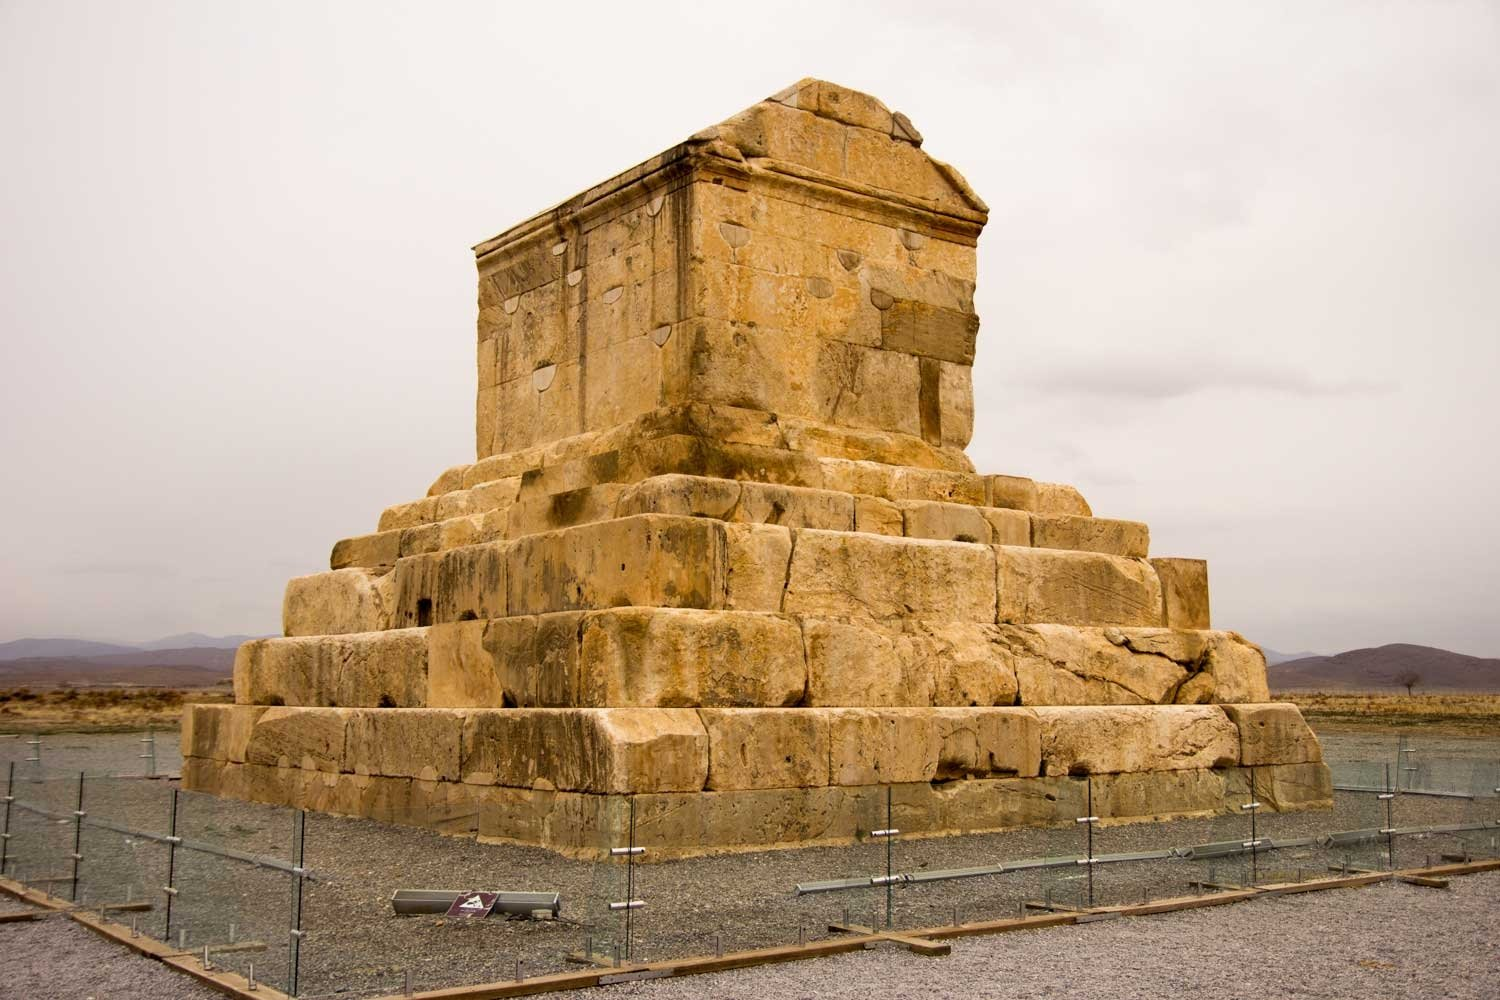 Things to see in Shiraz - Tomb of Cyrus the Great